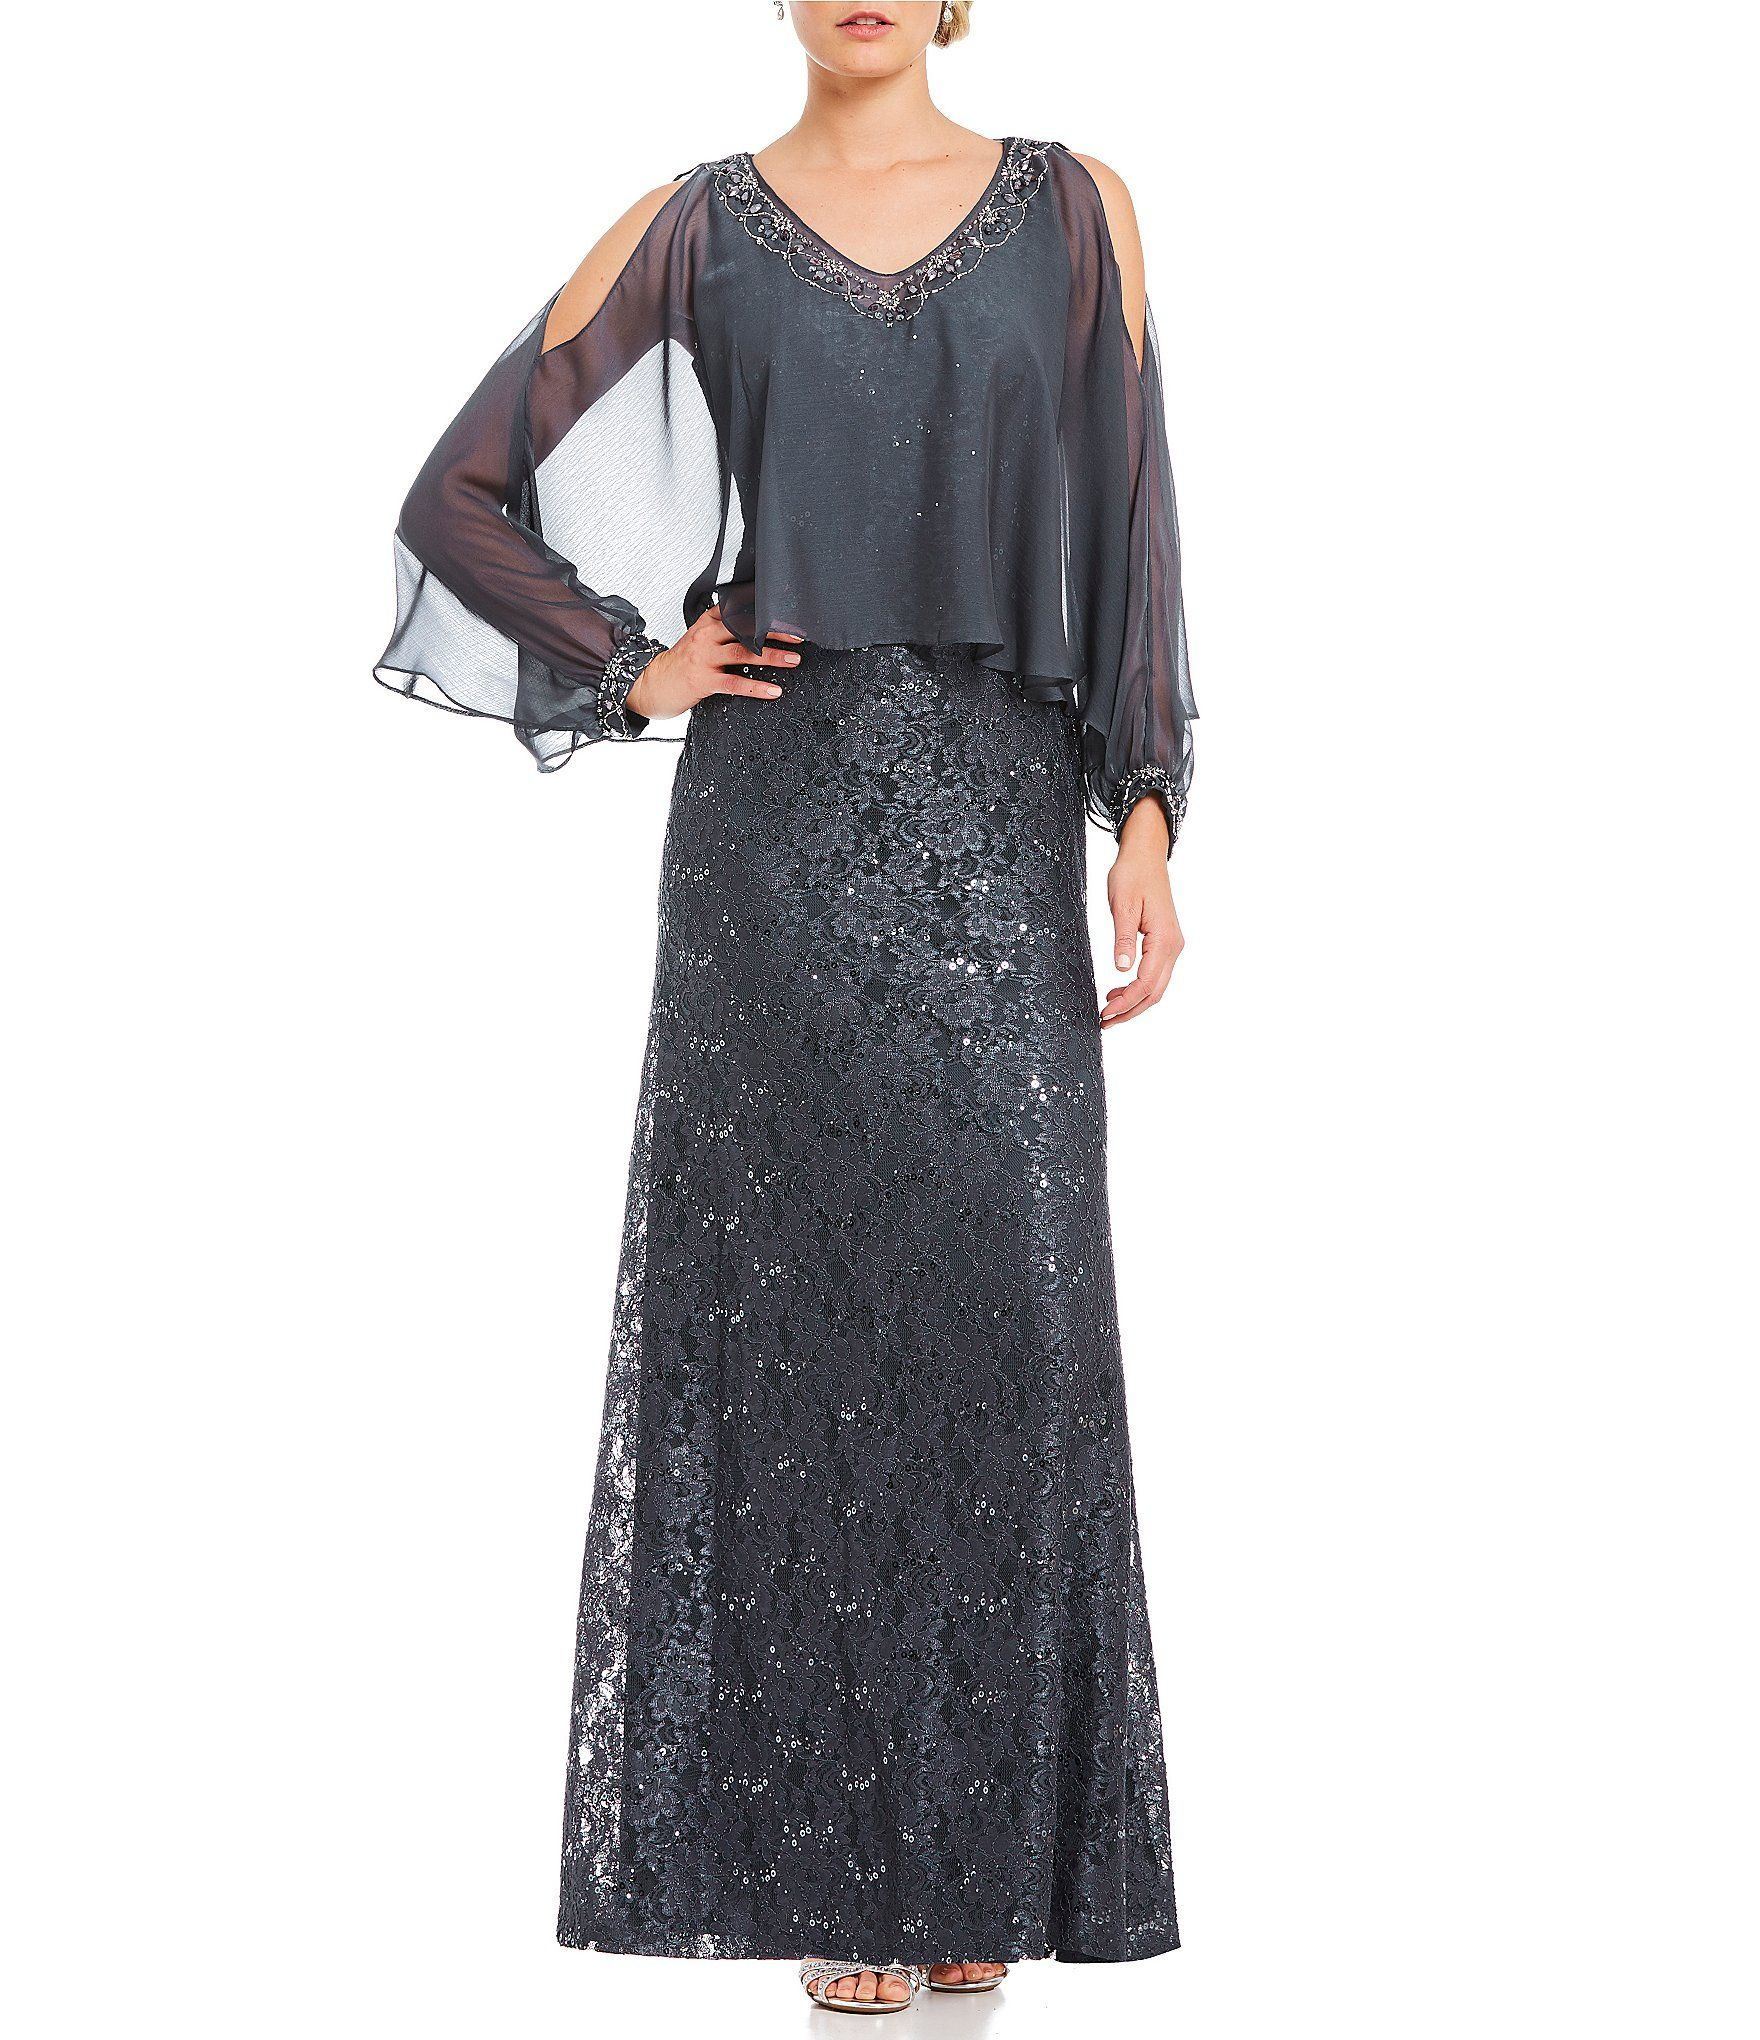 c0ed6172edad2 Shop for Ignite Evenings Lace Cold Shoulder Cape Gown at Dillards.com.  Visit Dillards.com to find clothing, accessories, shoes, cosmetics & more.  The Style ...